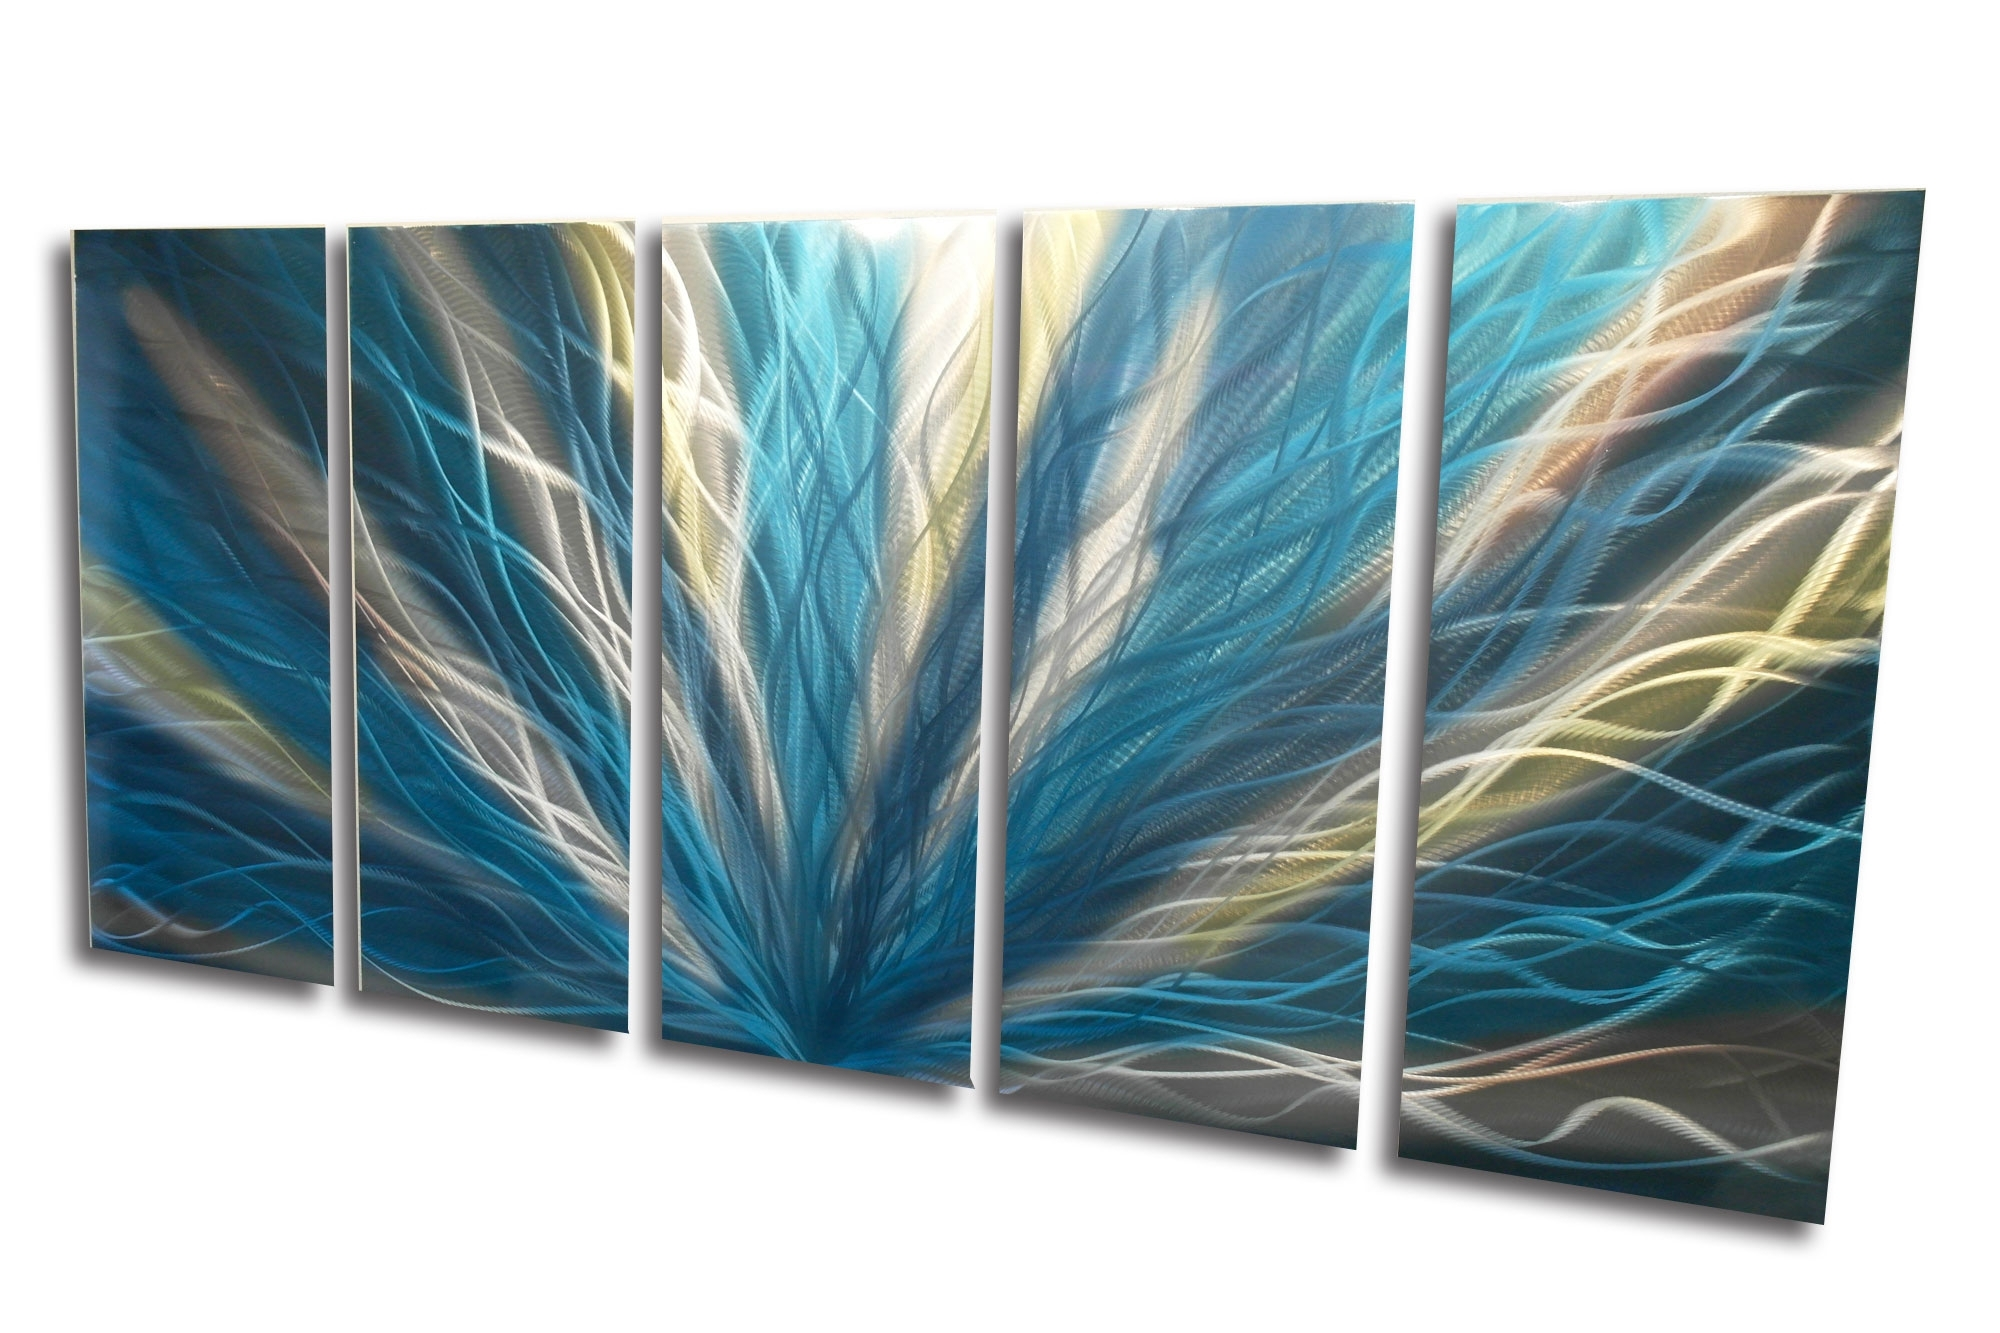 Most Recent Radiance Teal 36X79 – Metal Wall Art Abstract Sculpture Modern Inside Teal Metal Wall Art (View 8 of 15)